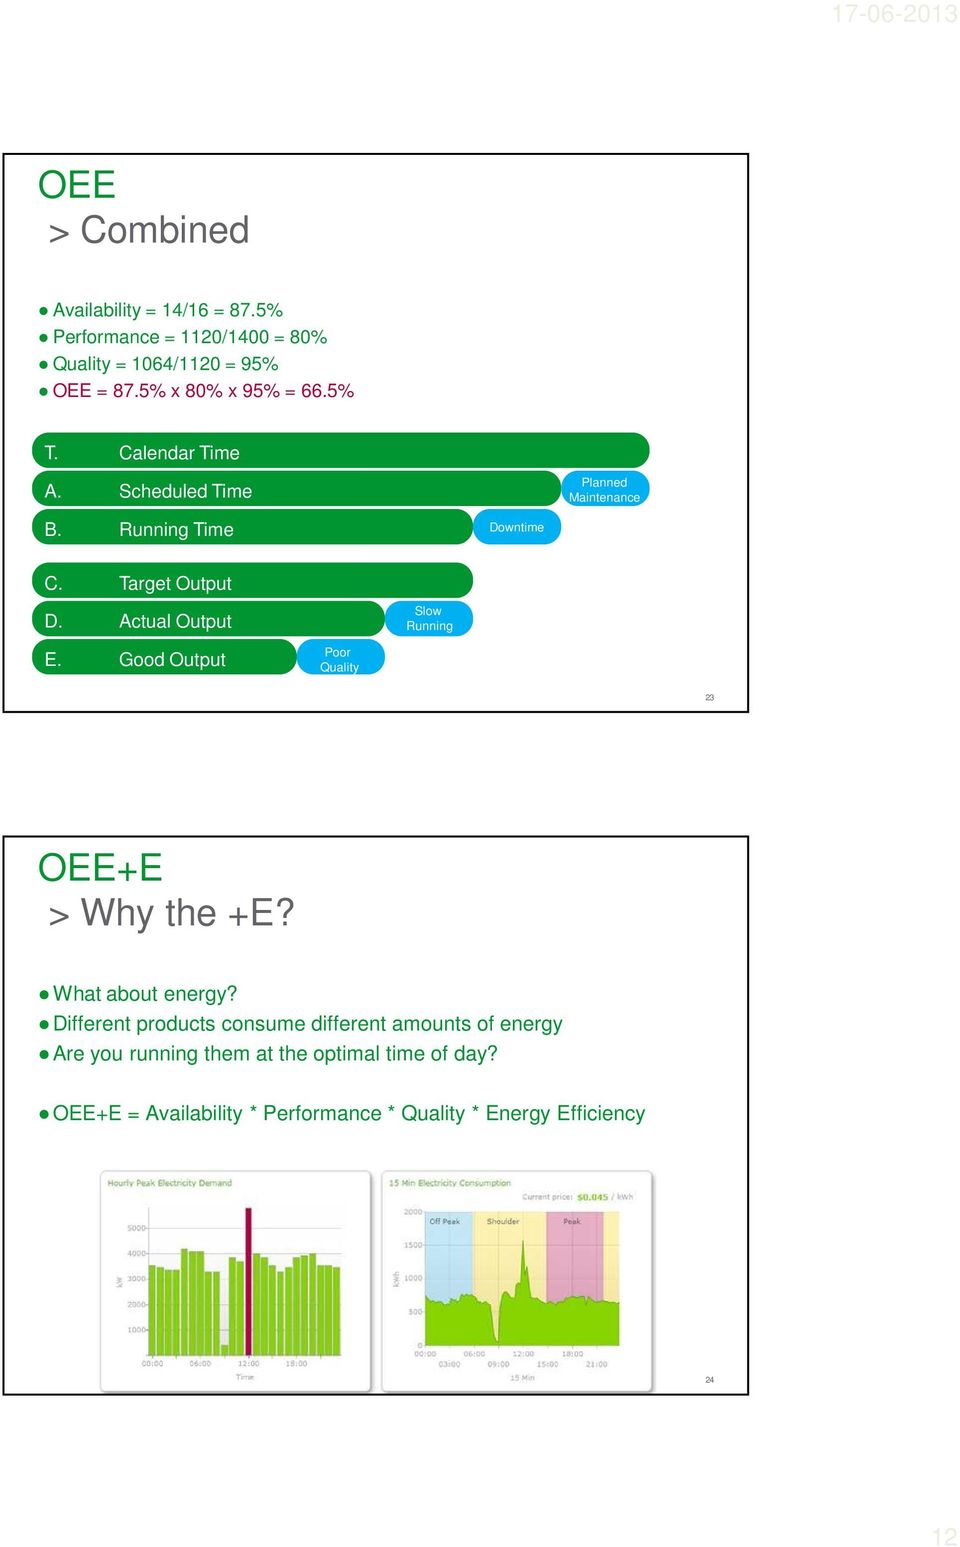 Actual Output Slow Running E. Good Output Poor Quality 23 OEE+E > Why the +E? What about energy?